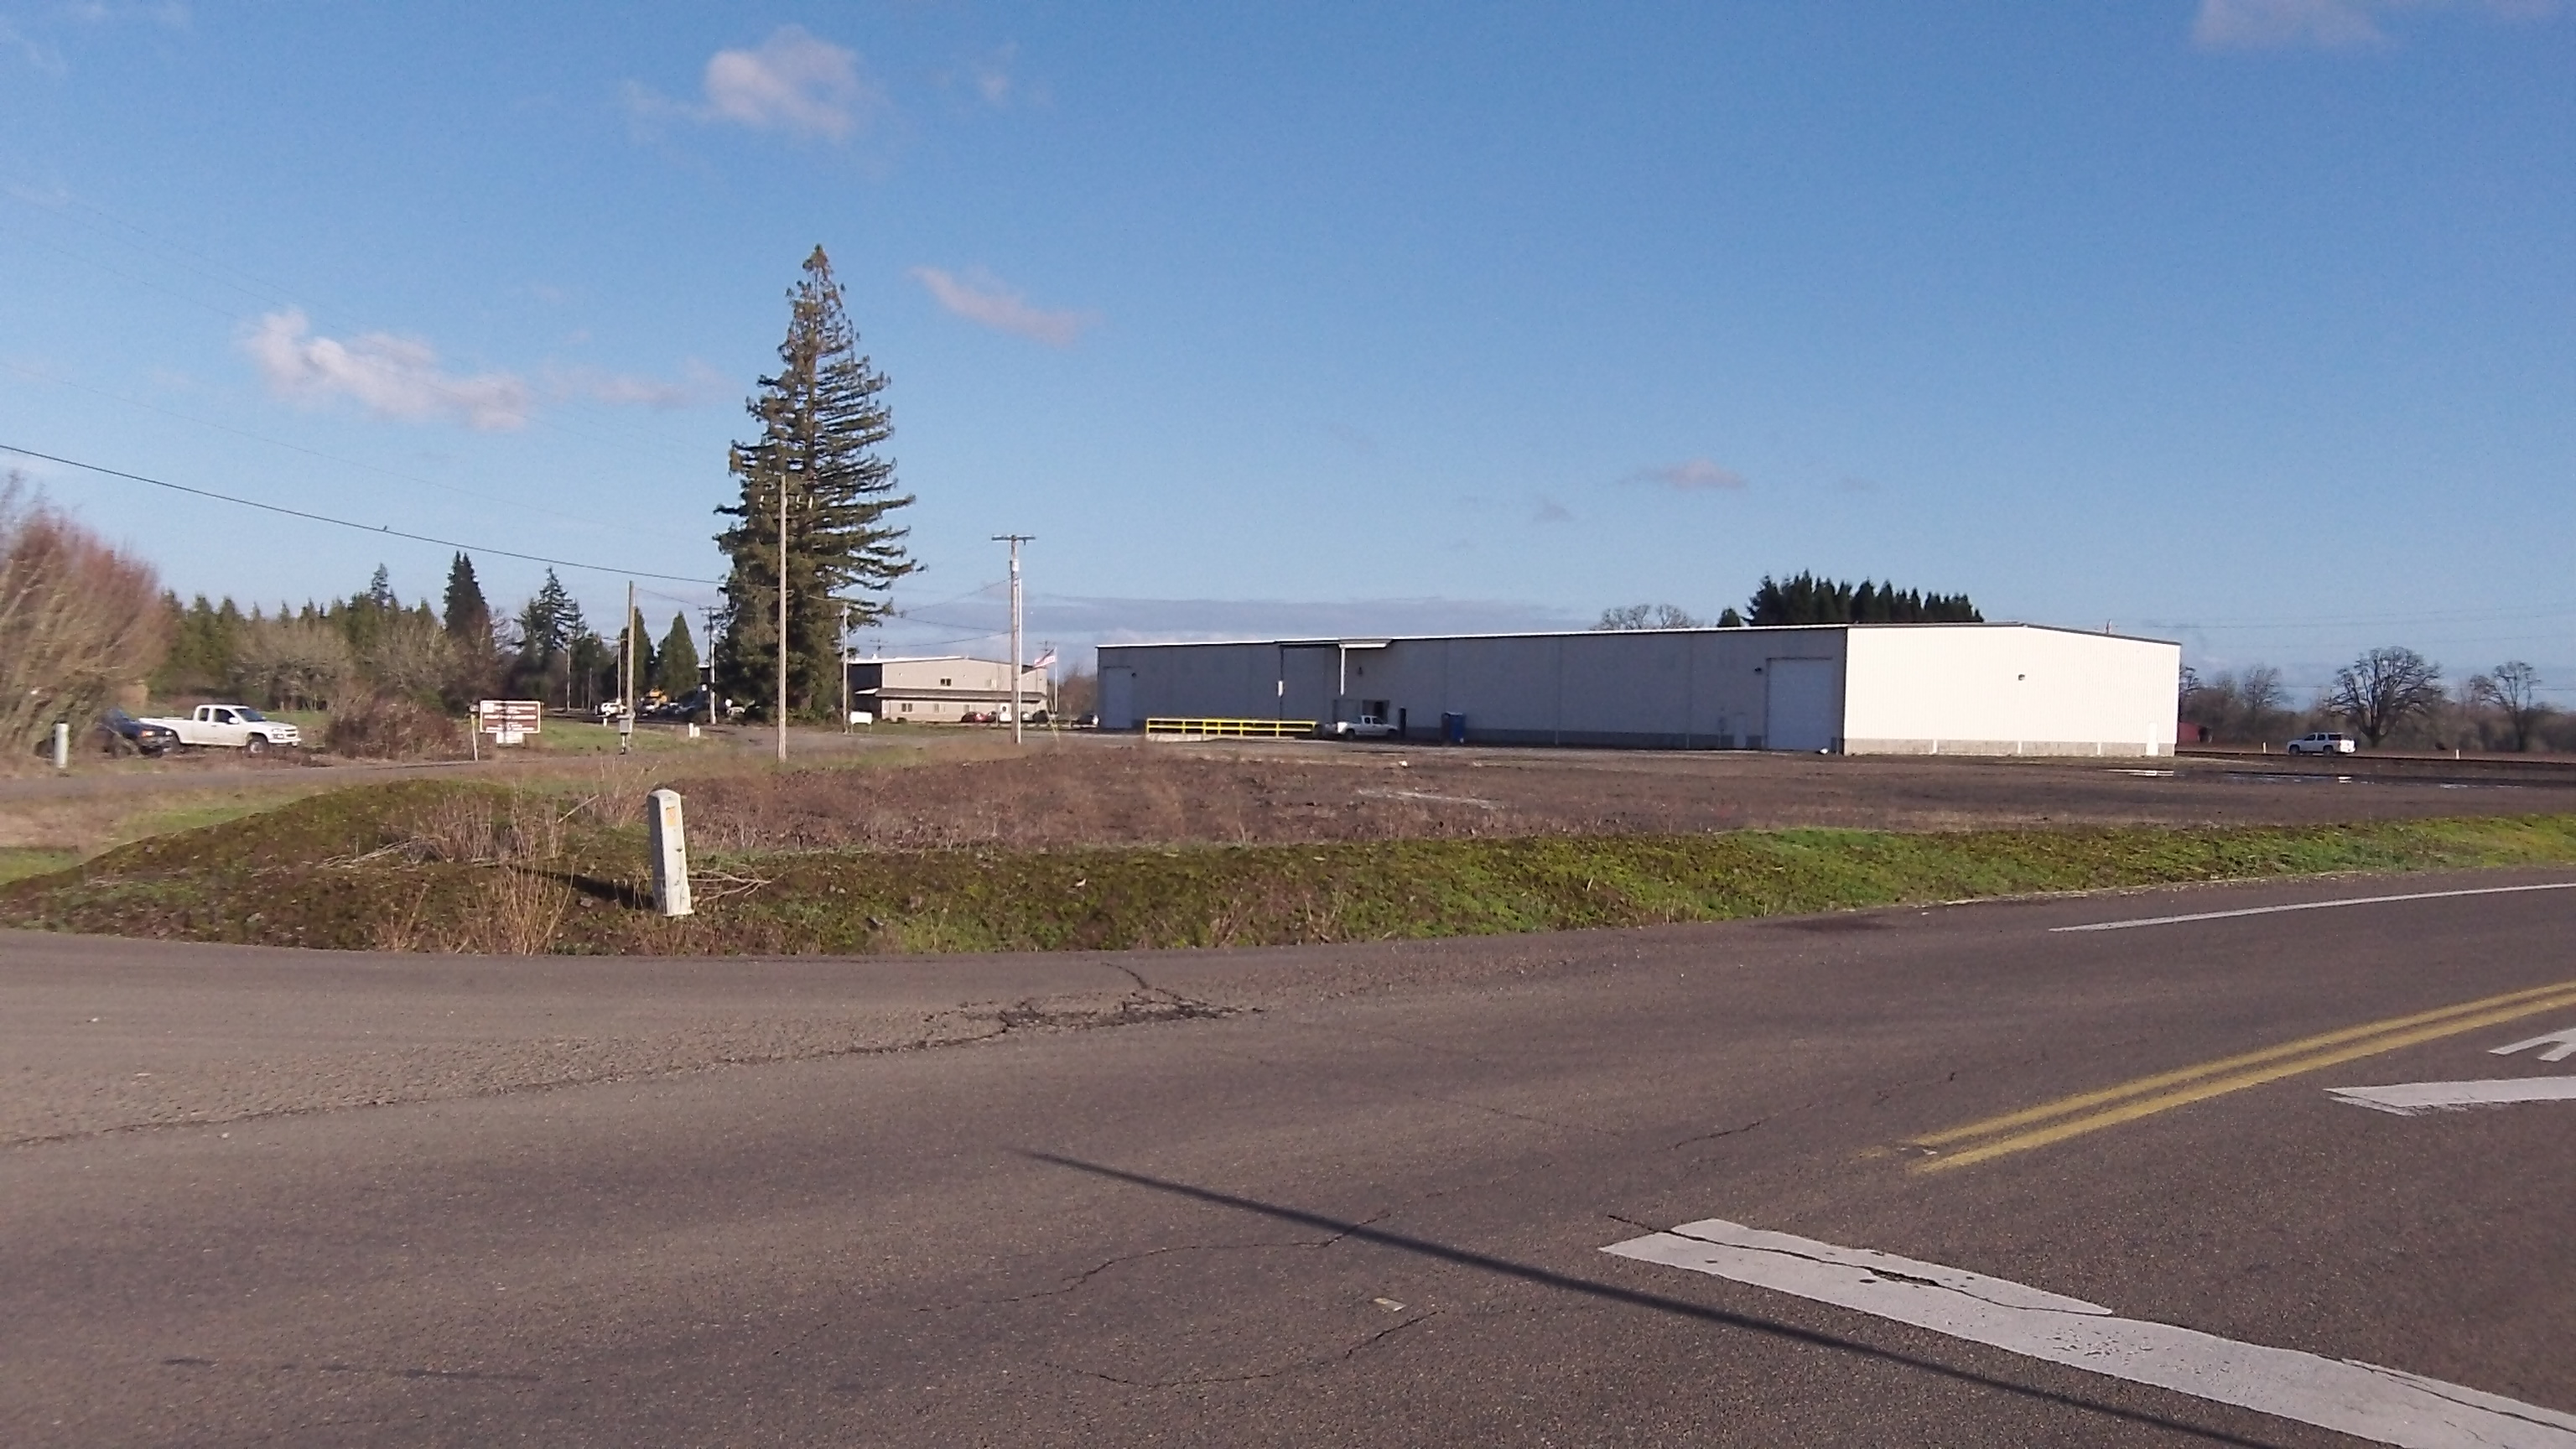 At Granger and Hyslop Roads, the path would skirt the warehouse in the background.